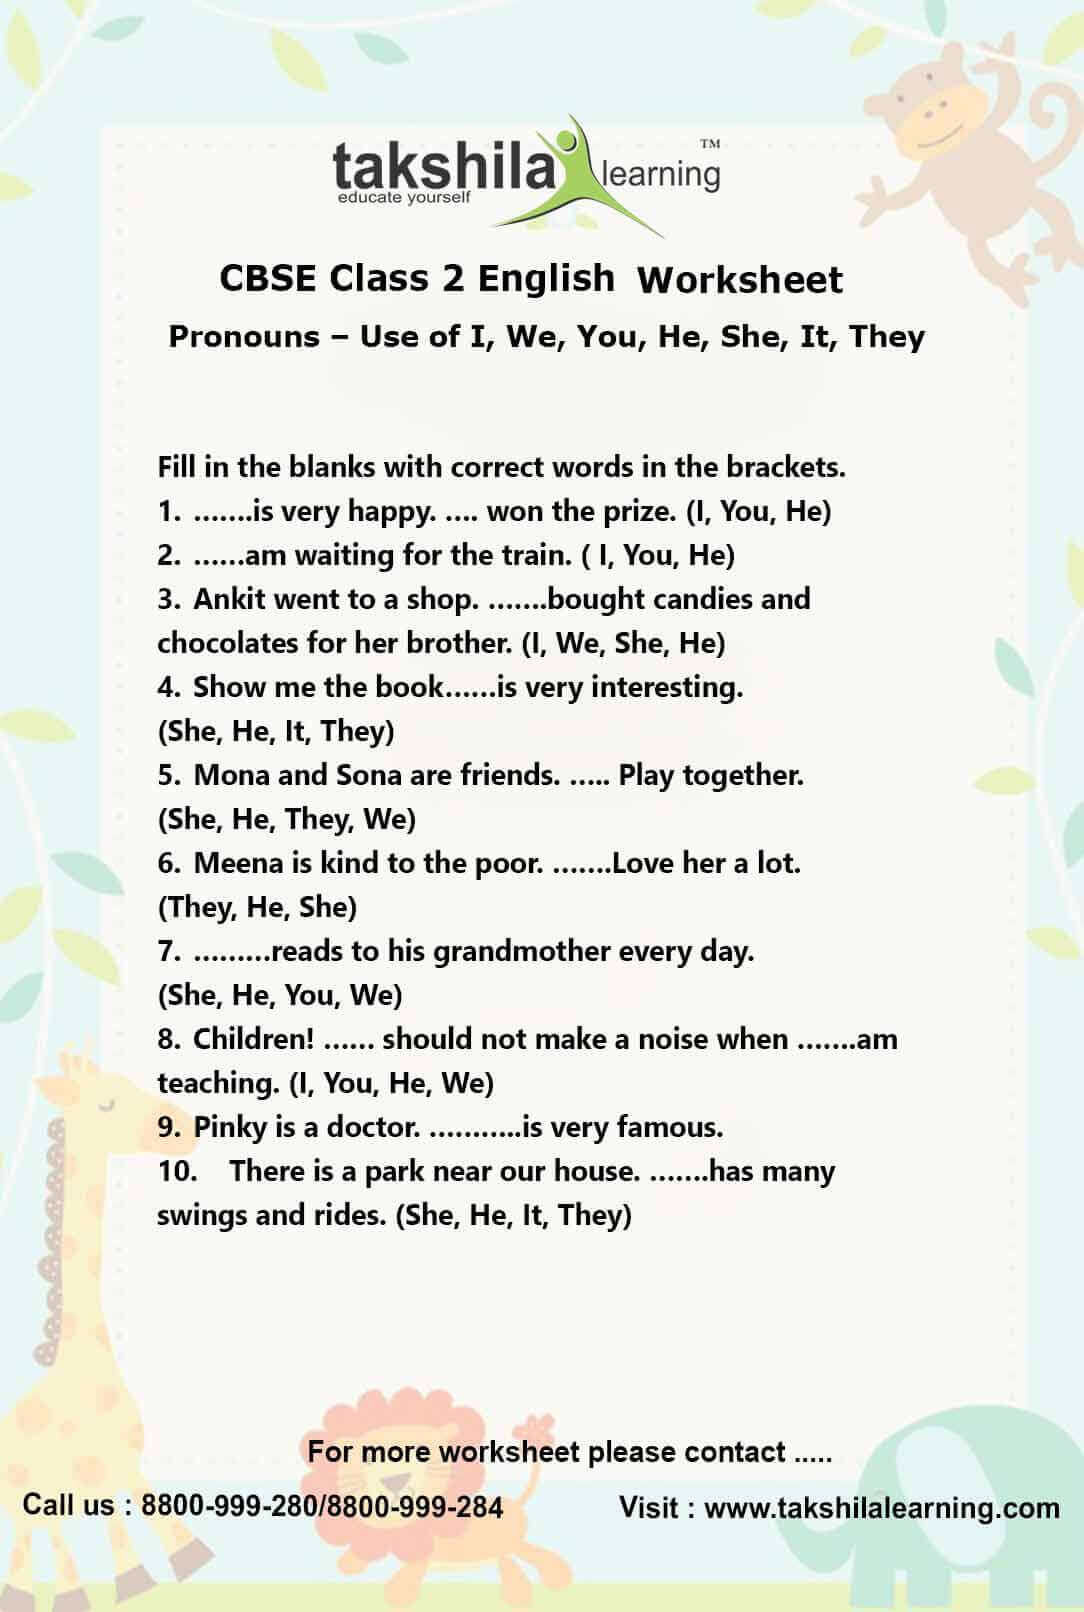 Second Grade Pronouns Worksheet Ncert & Cbse Class 2 English Use Of Pronouns Practice Worksheet